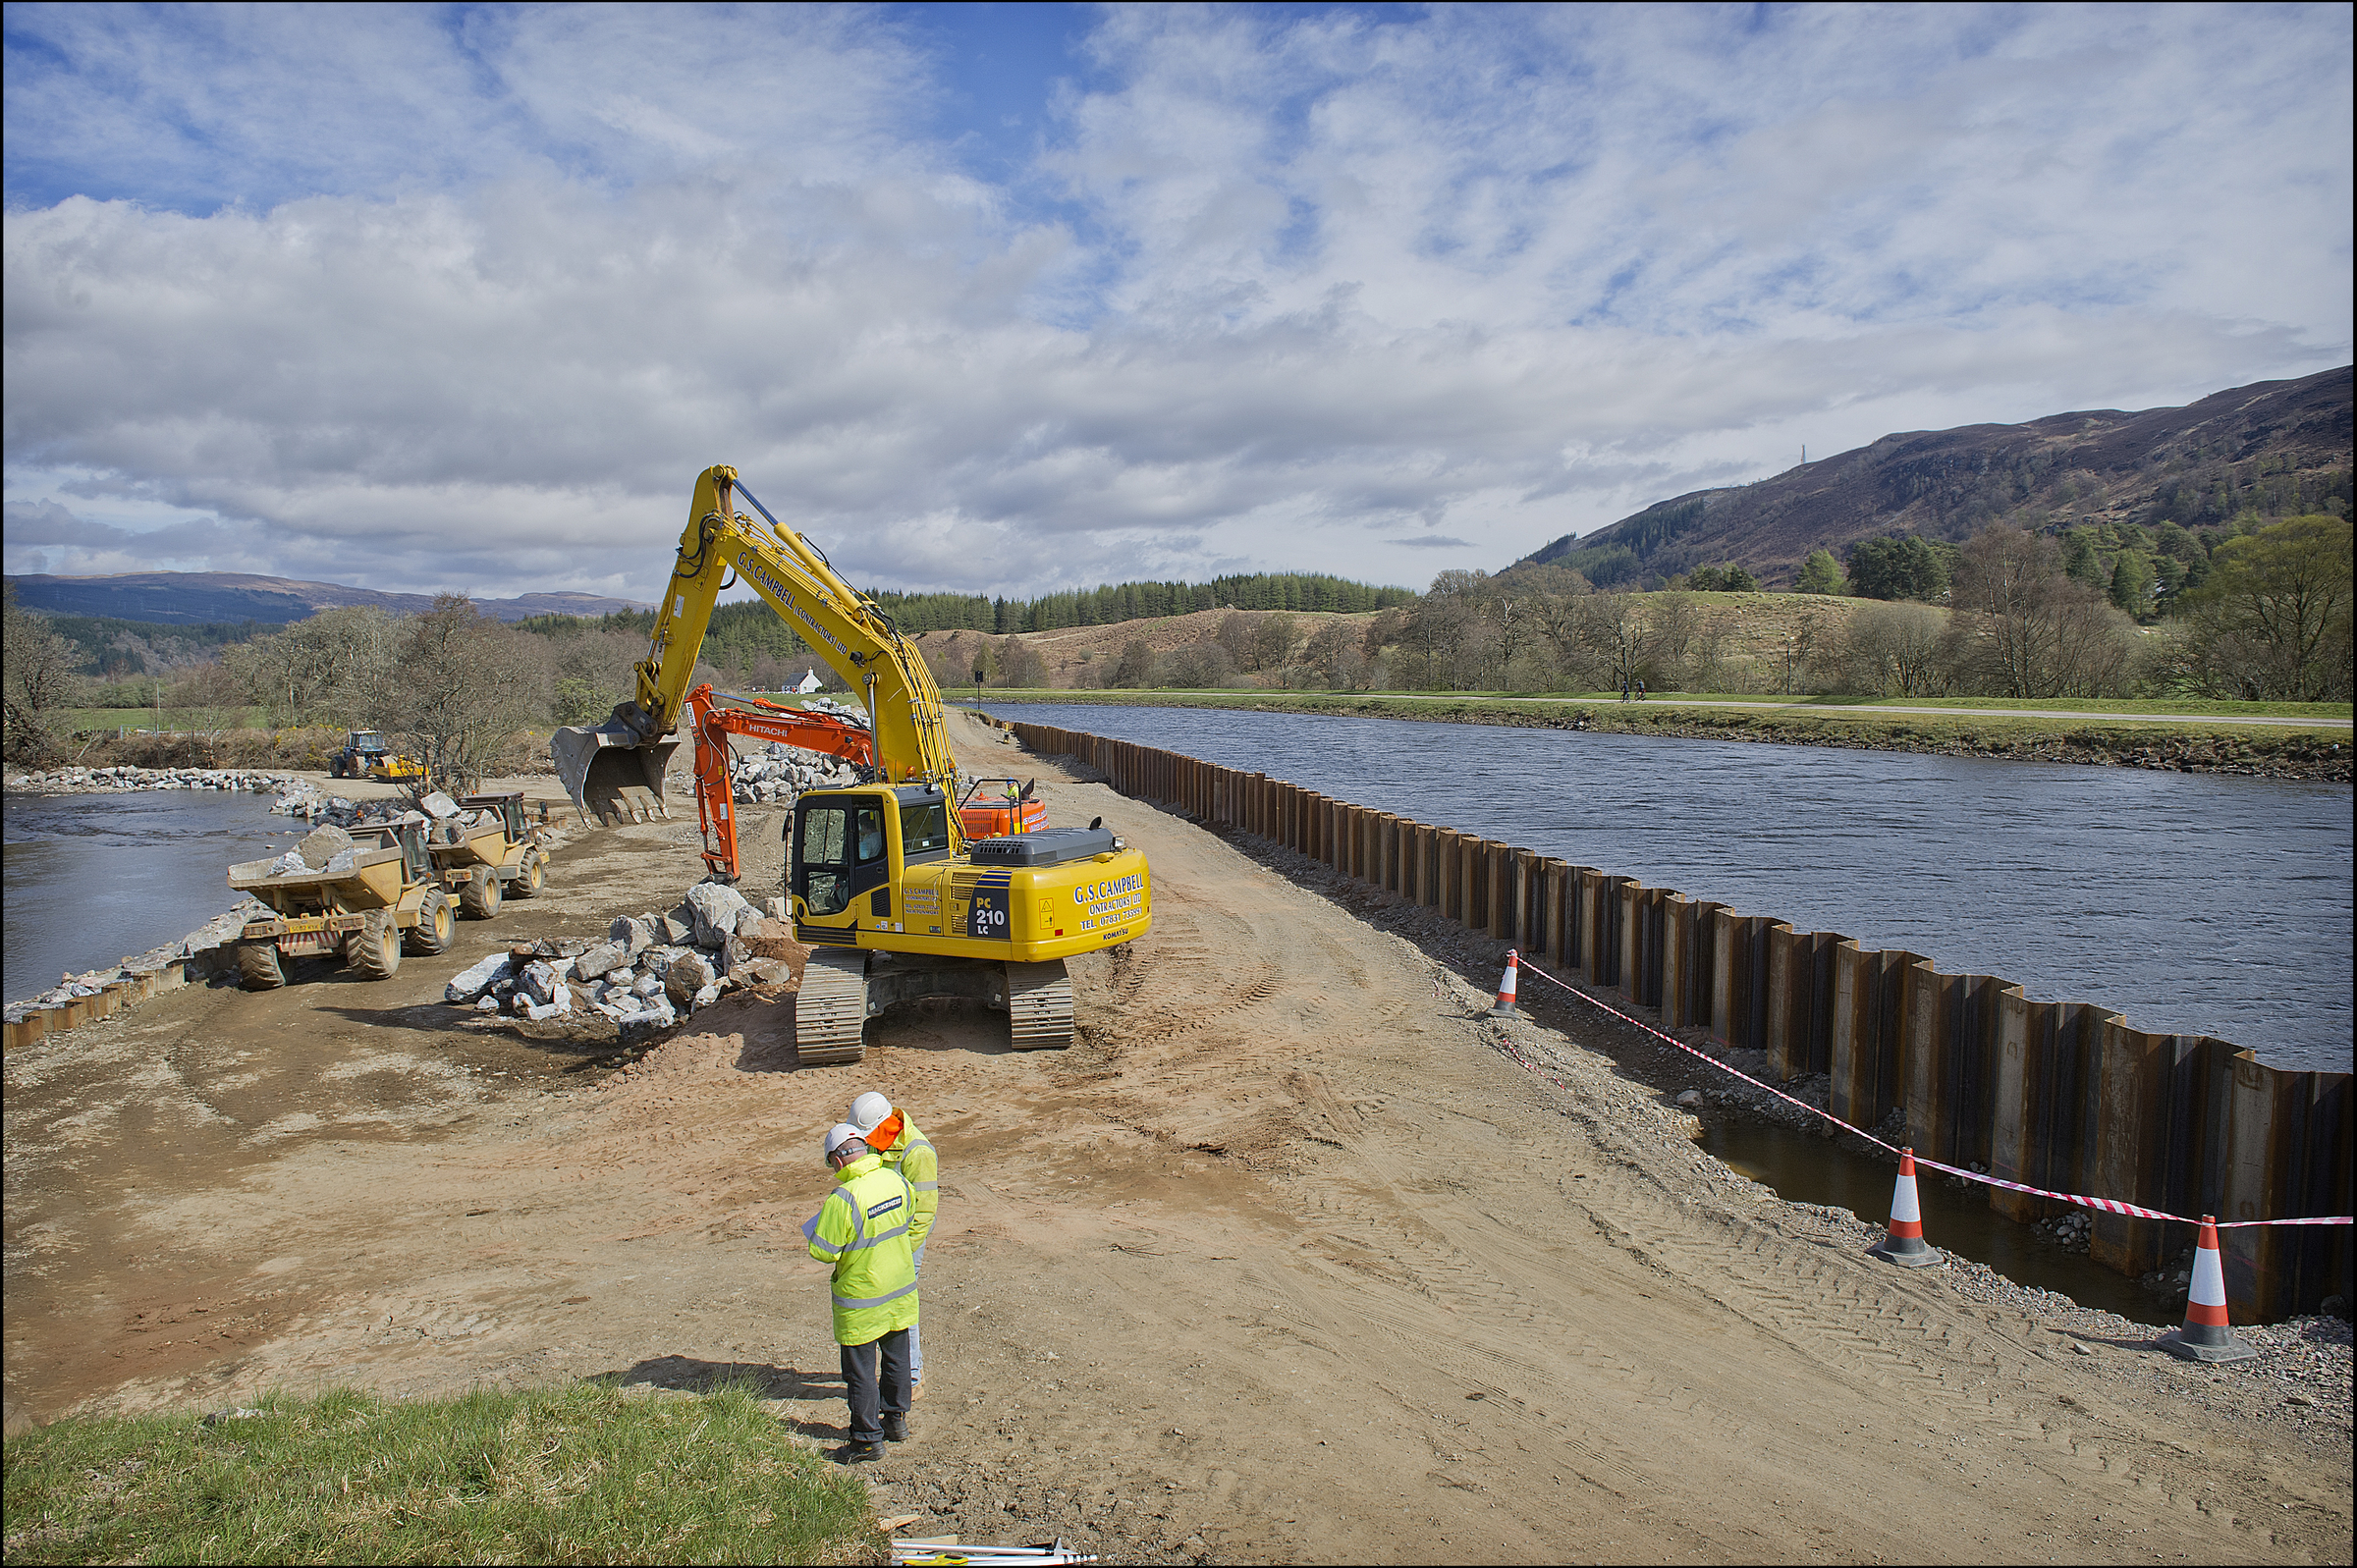 The repairs on the Caledonian Canal